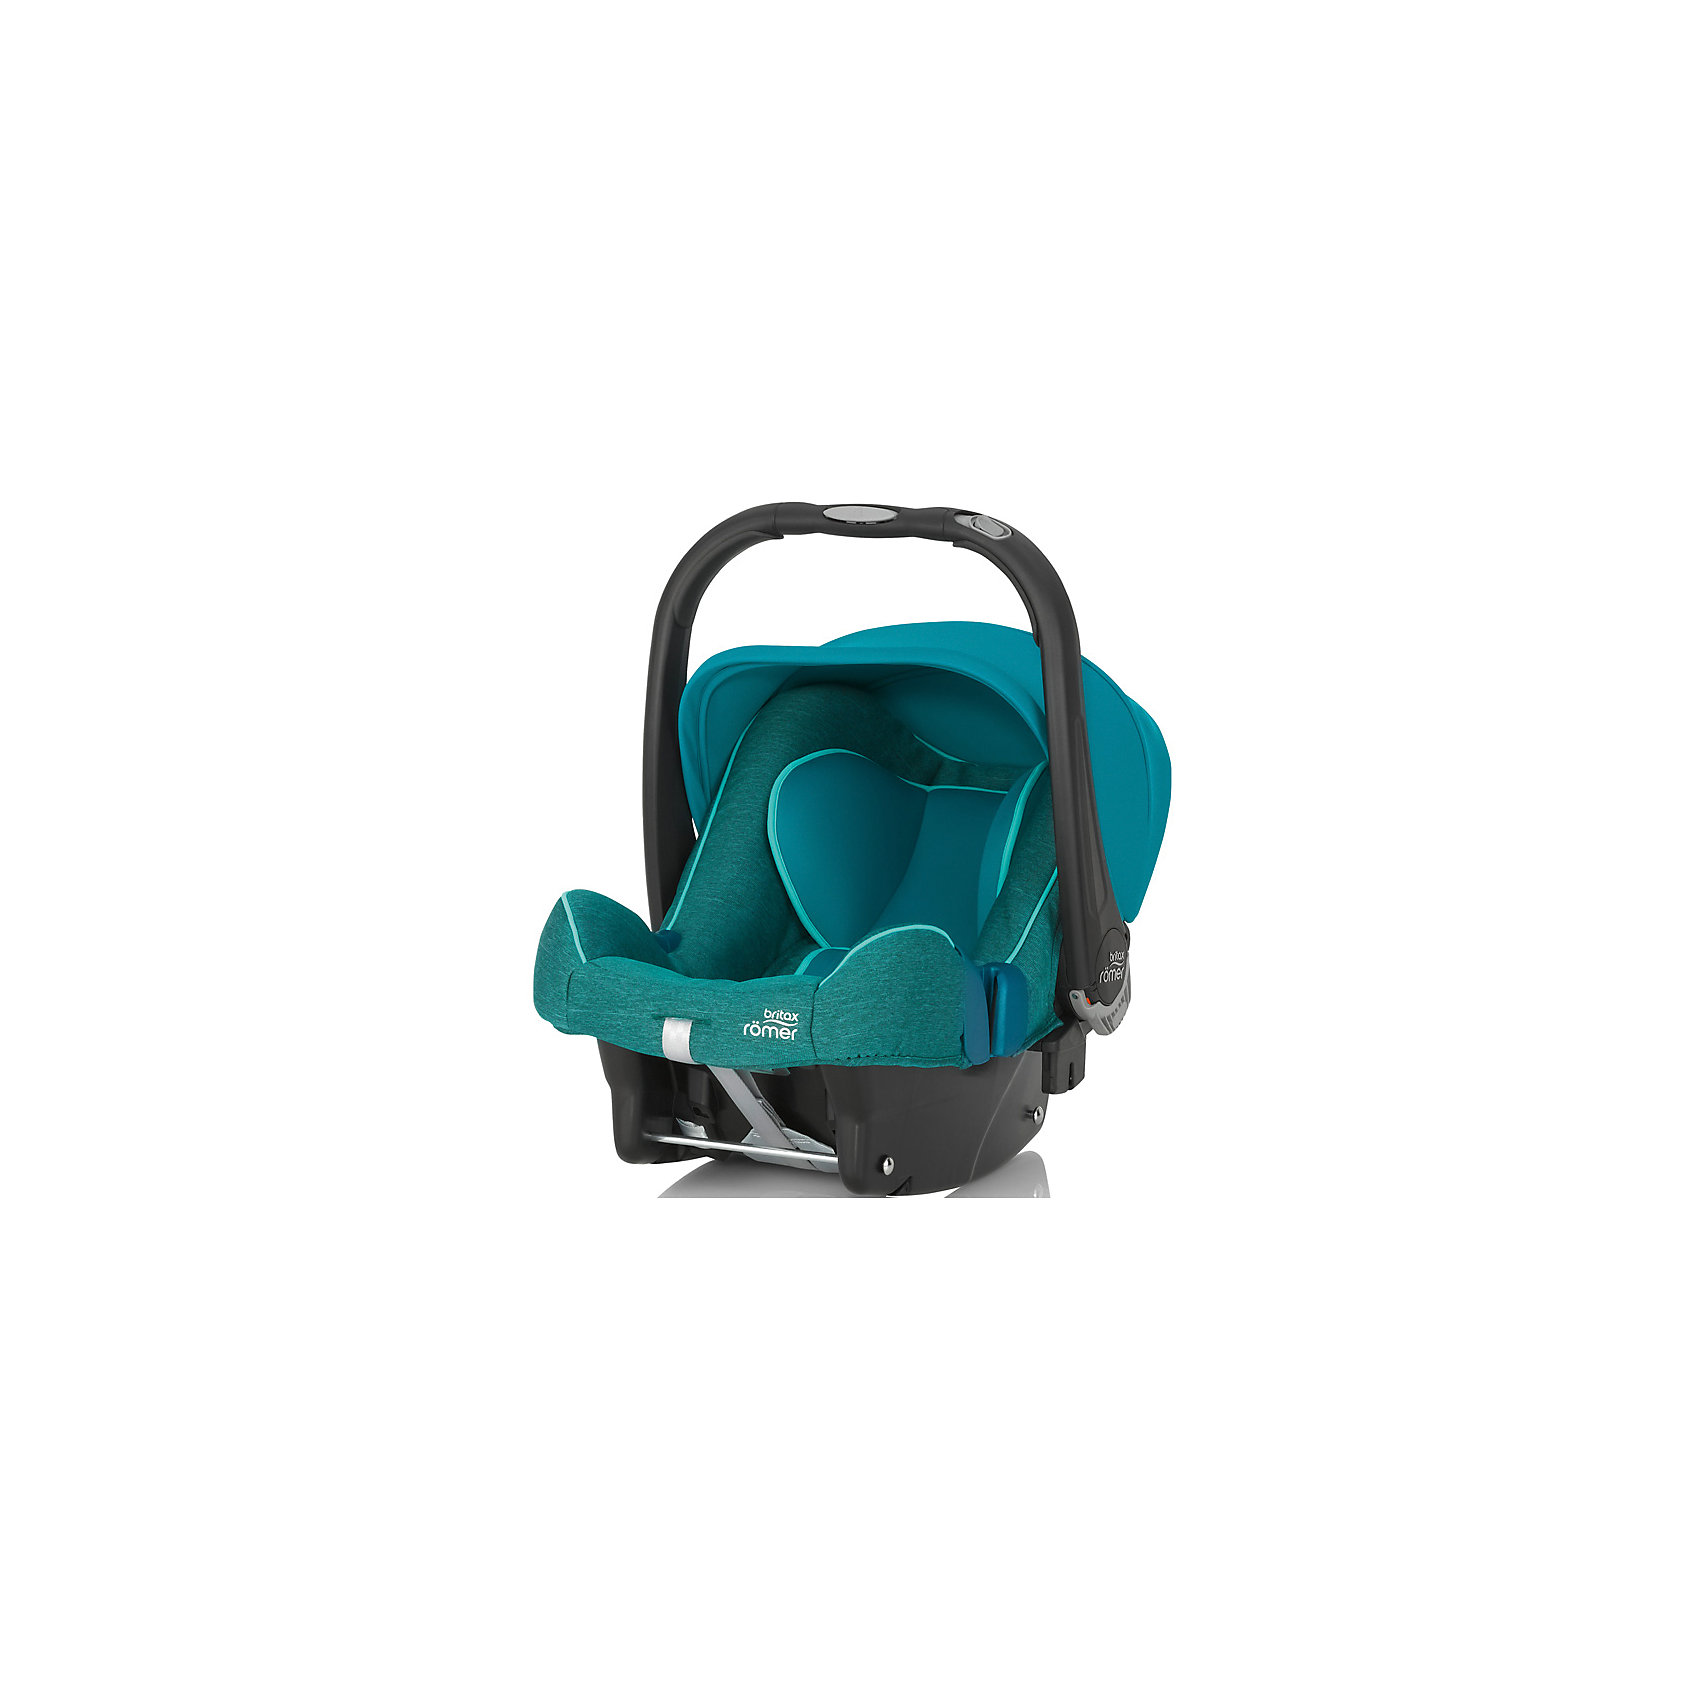 Britax Römer Автокресло Baby-Safe Plus SHR II, 0-13 кг., Britax Roemer, Green Marble britax roemer britax roemer автокресло baby safe plus shr ii green marble highline